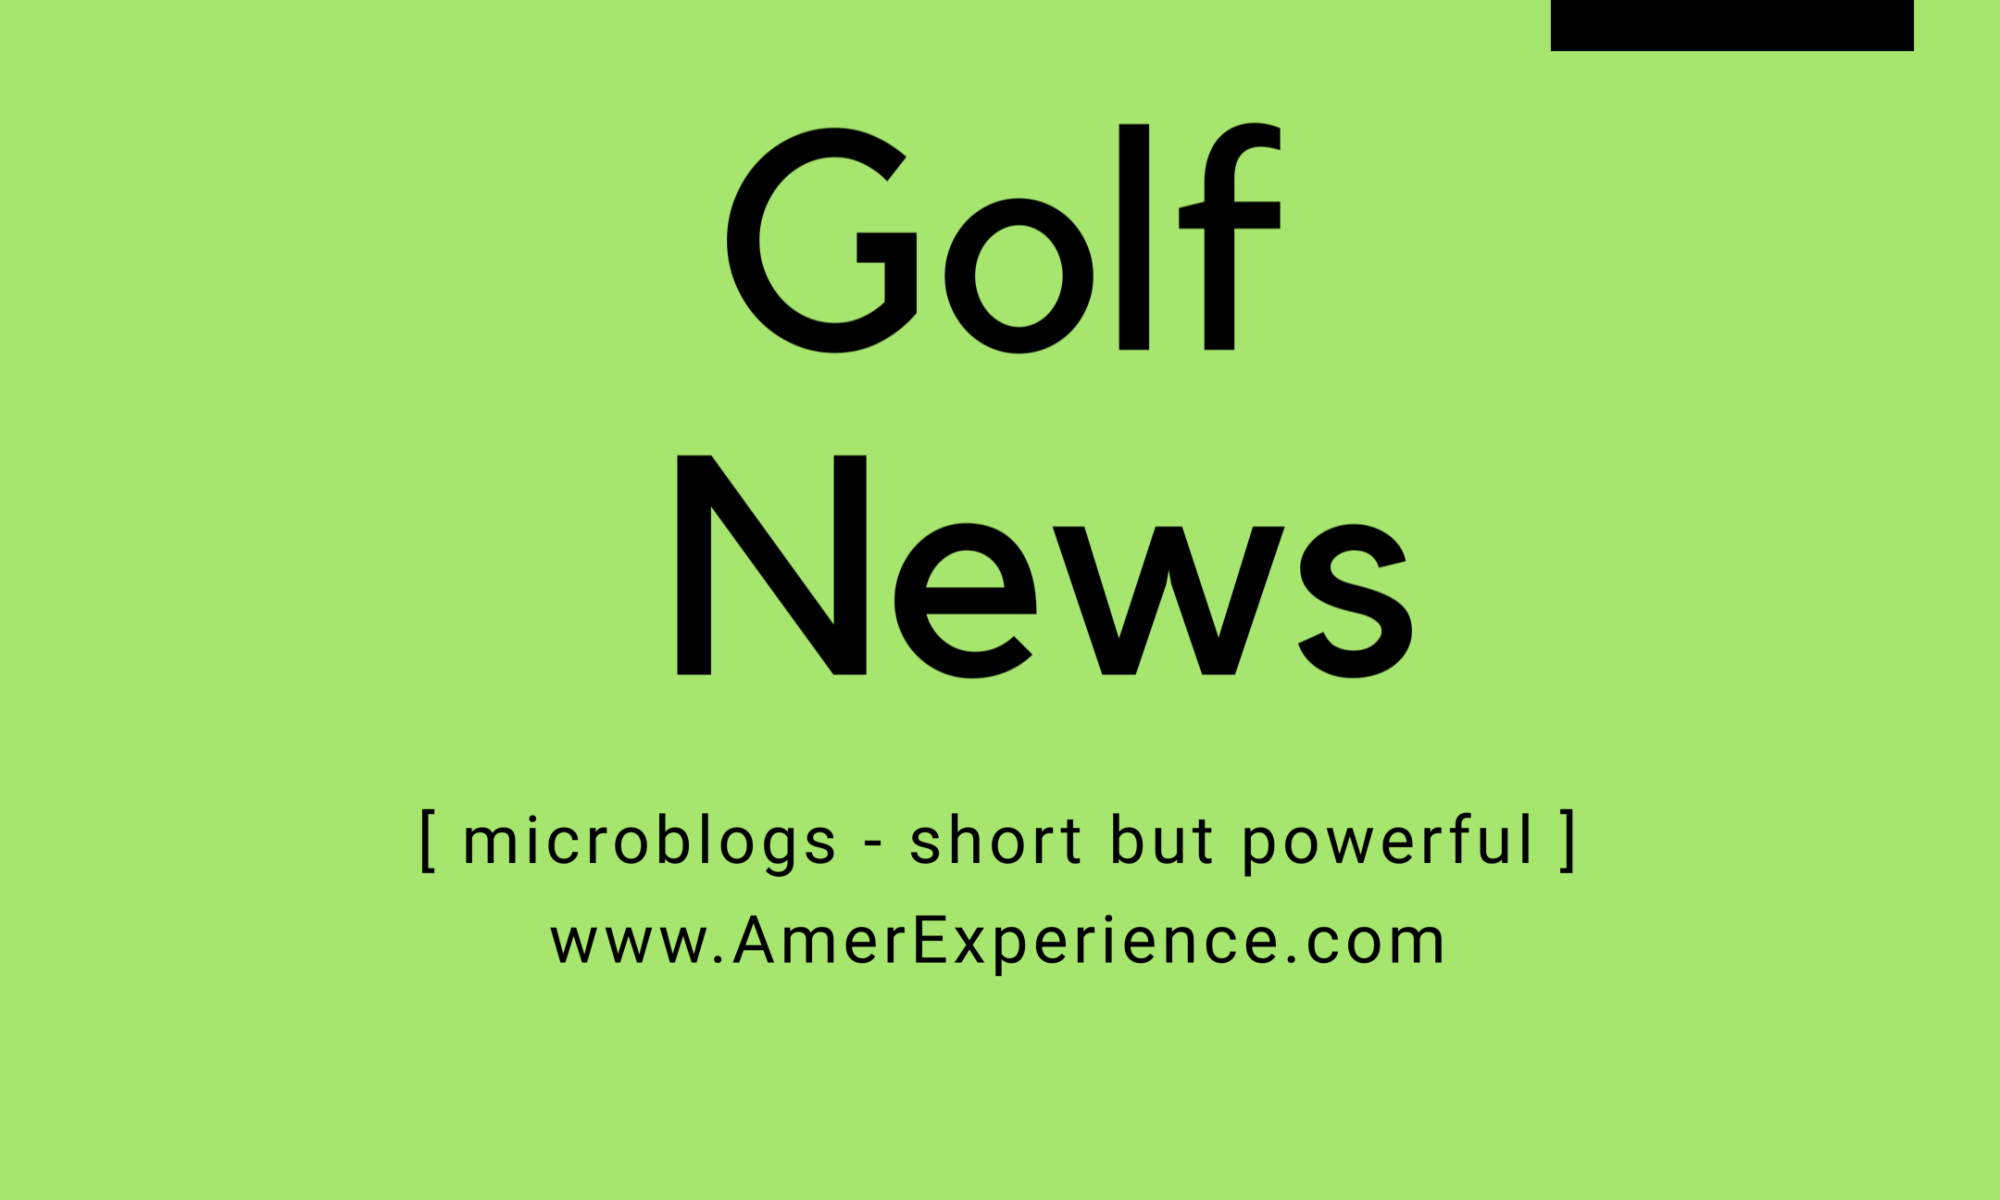 Golf News microblogs from AmerExperience